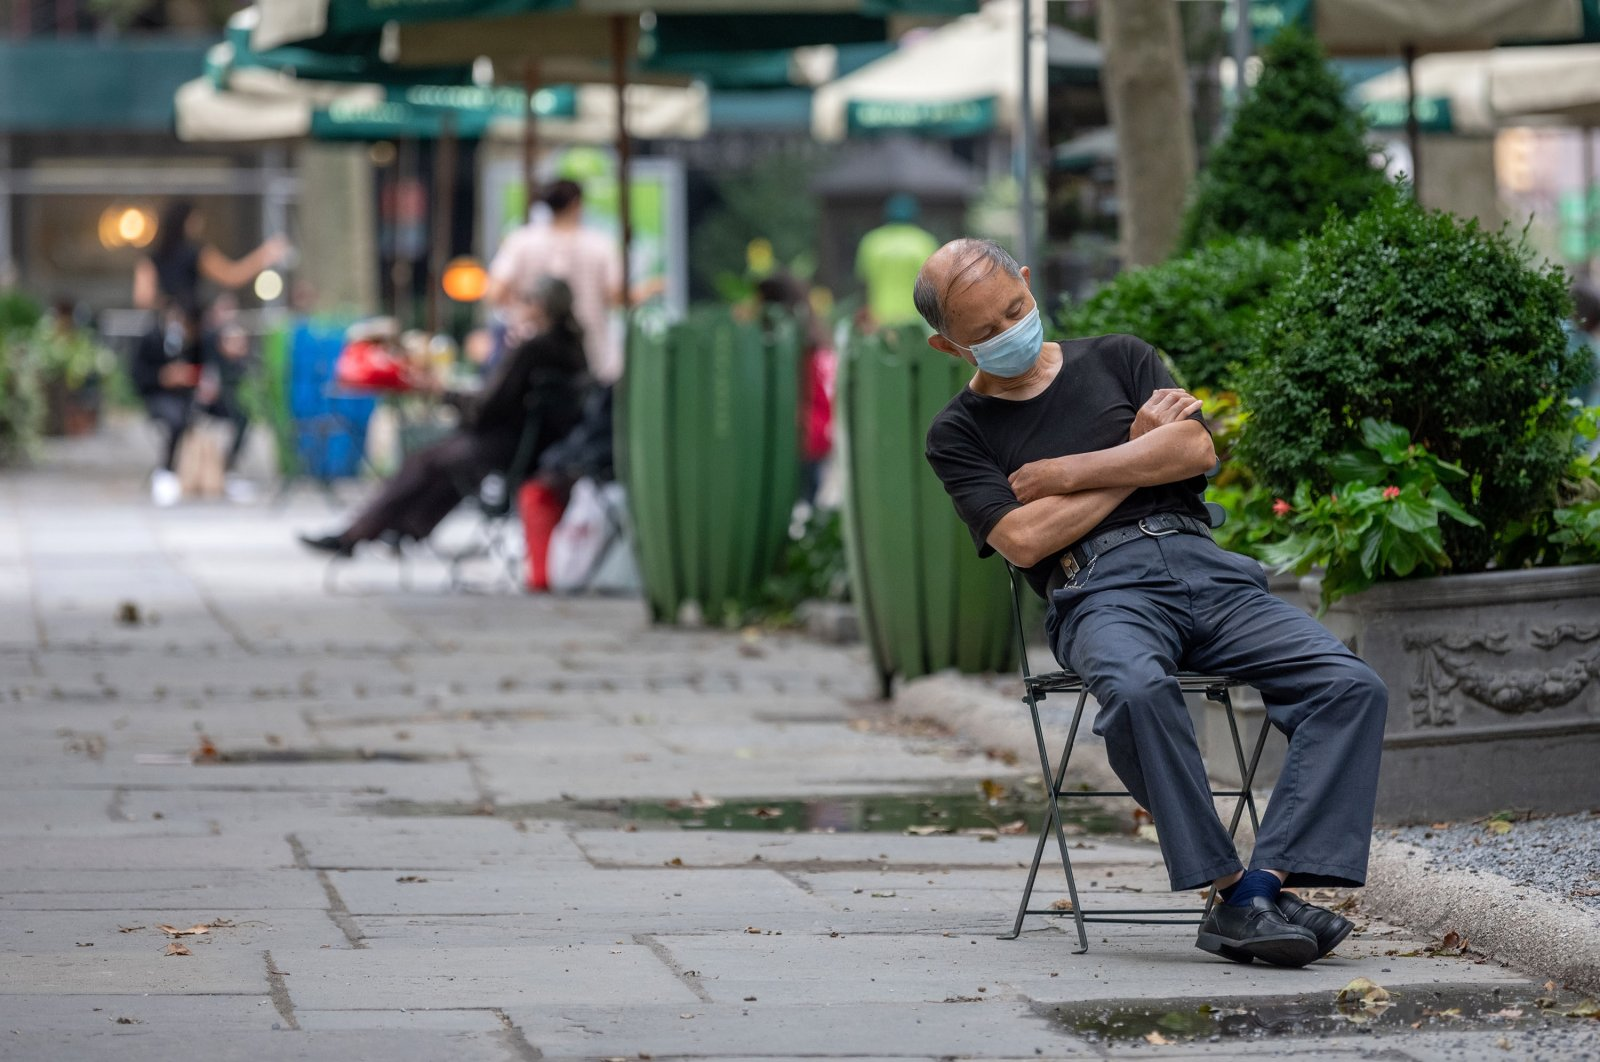 A man wearing a mask takes a nap while sitting in Bryant Park in New York City, U.S., Aug. 7, 2020. (Getty Images)